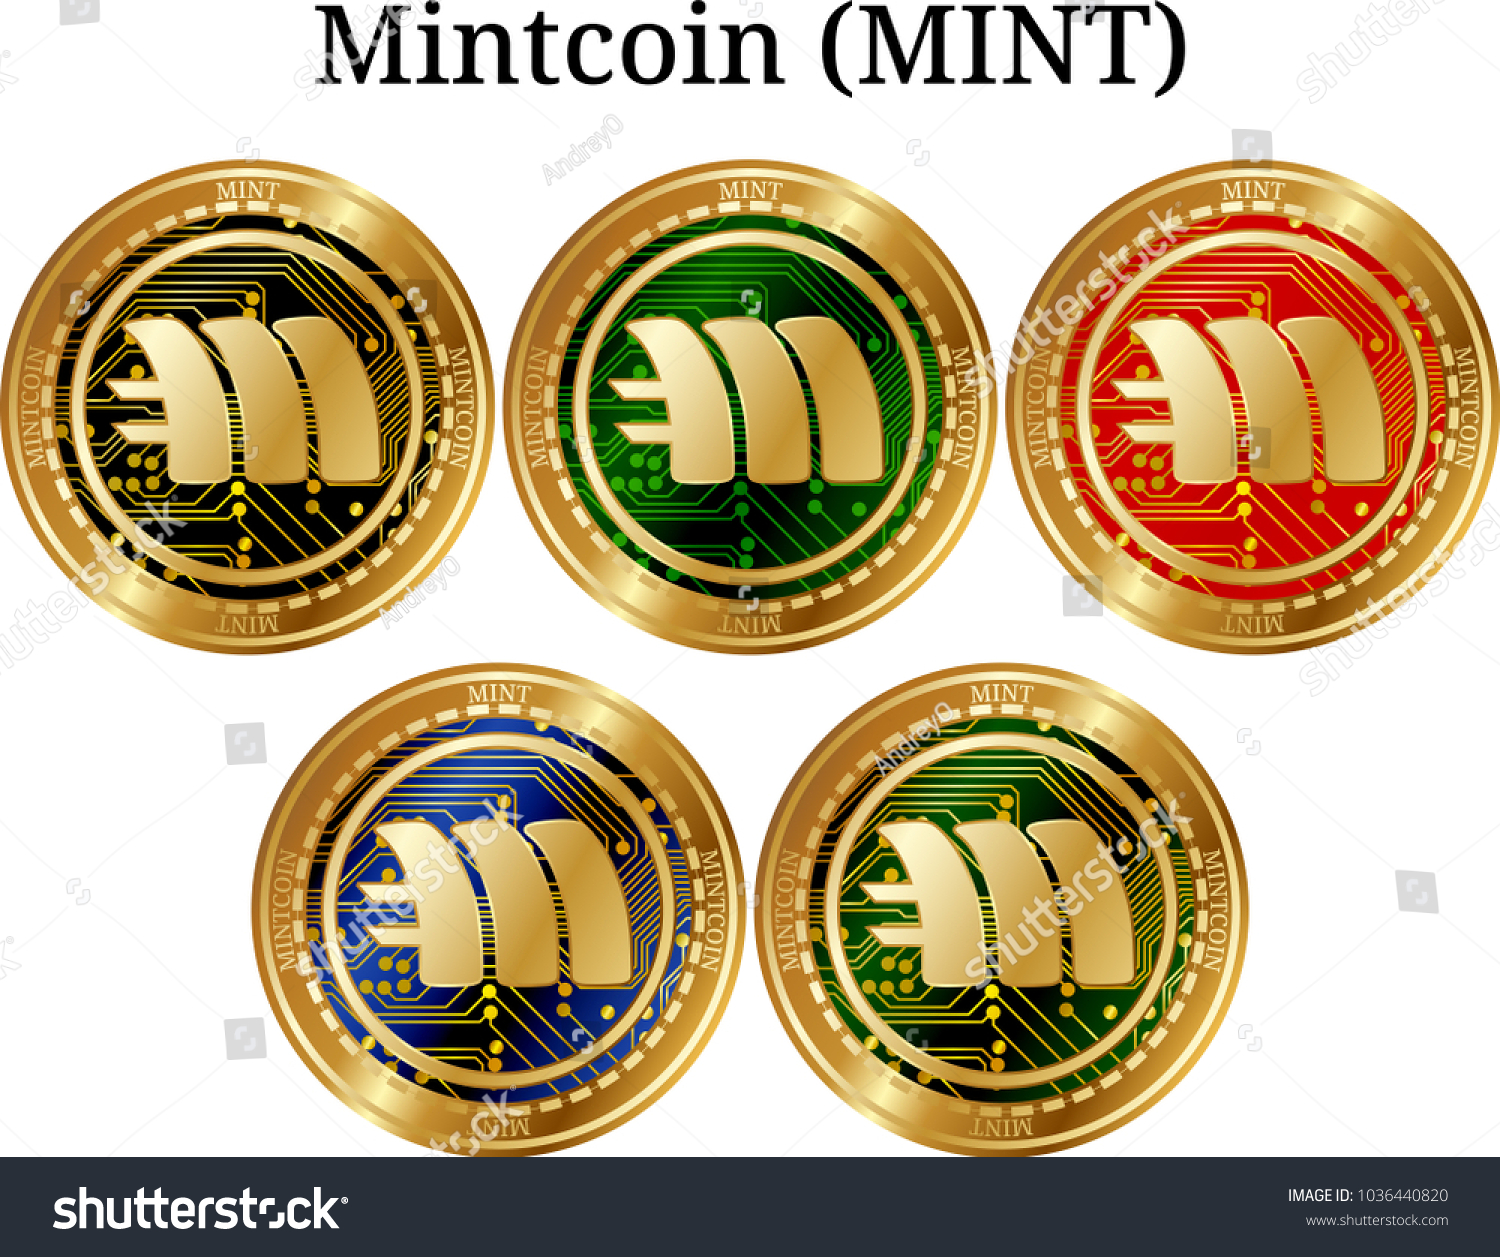 Mint coin crypto currency stocks best sports betting apps for android